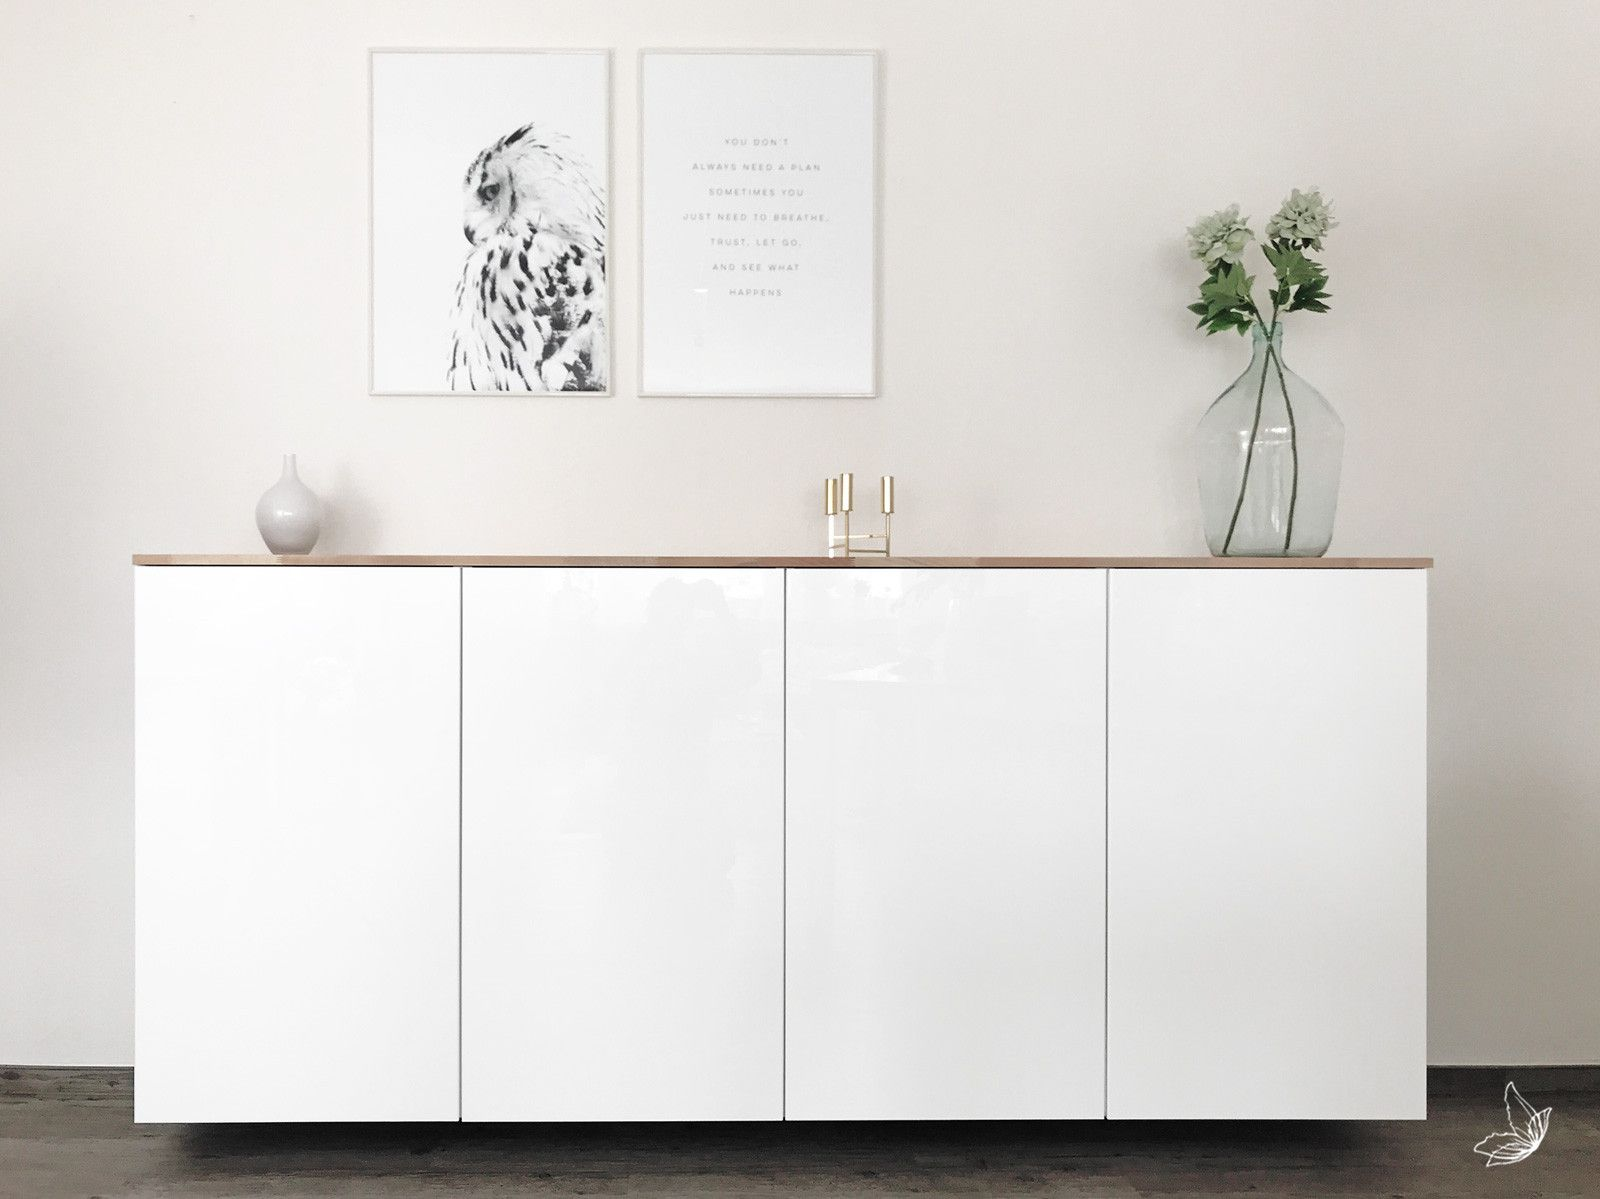 Top 20 Ikea Kuchen Sideboard Idees De Design D Interieur Et D Inspiration Pour La Decoration Dengan Gambar Kamar Tamu